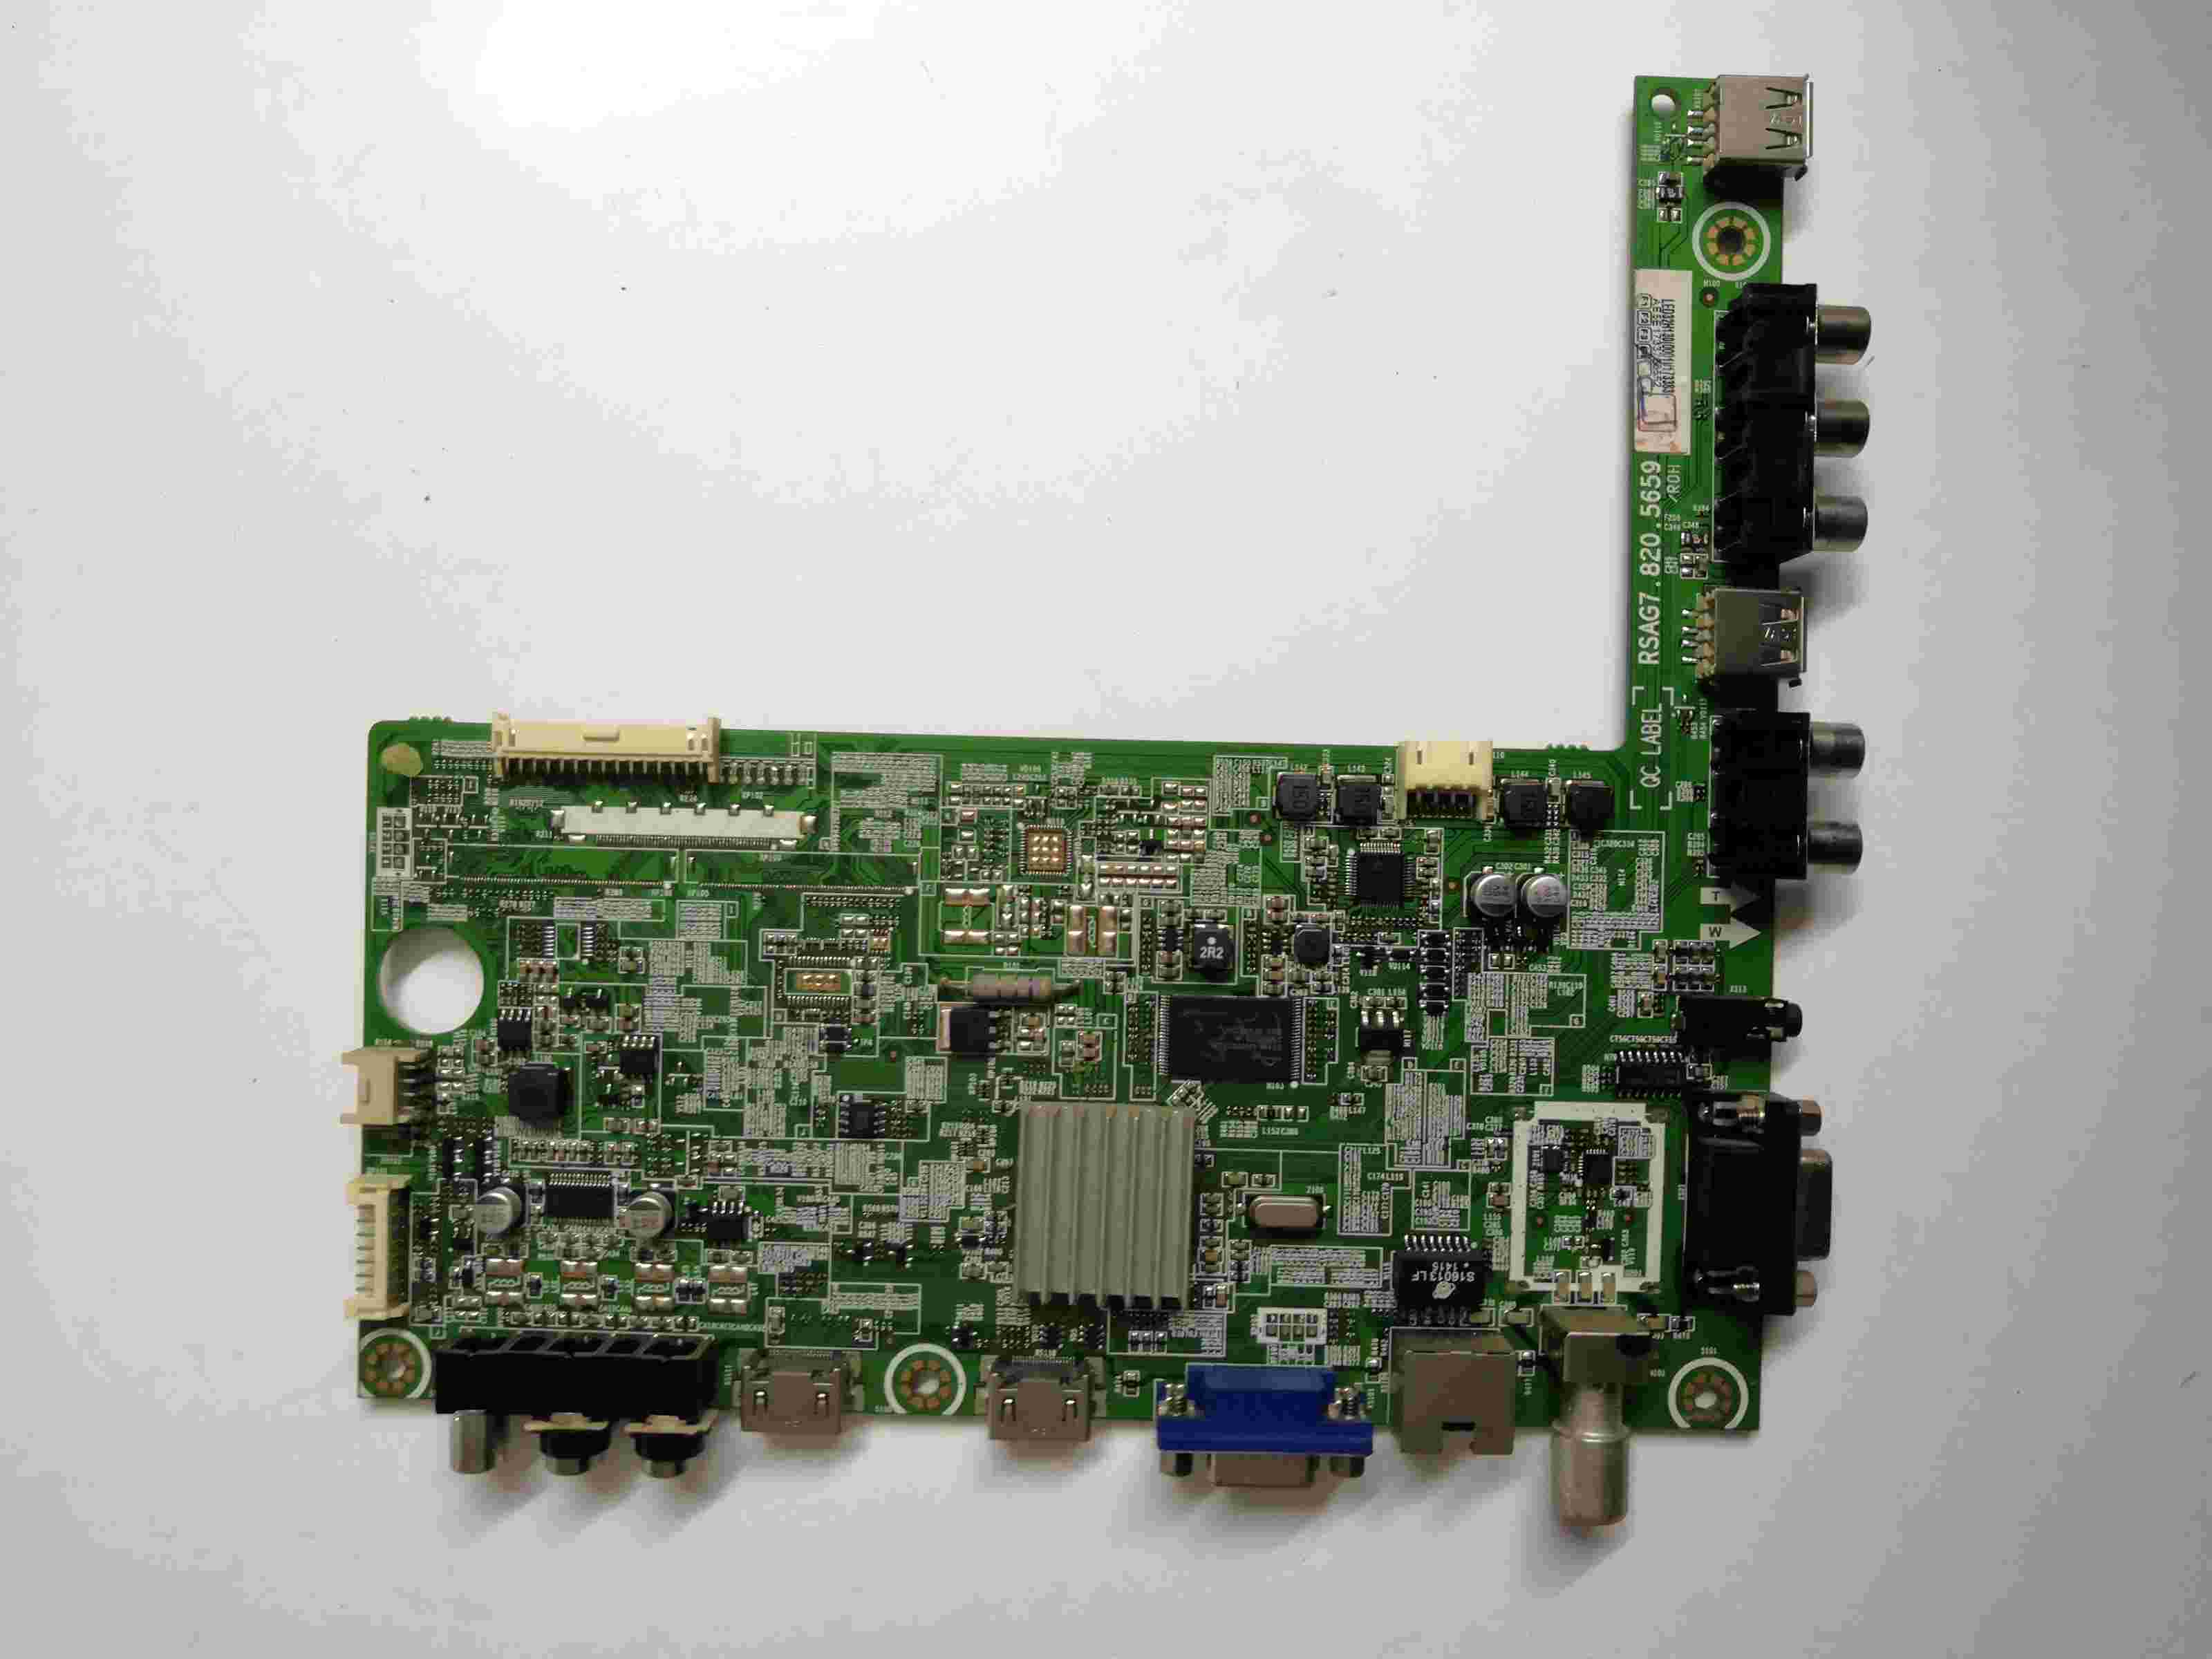 Main Board Power Board Circuit Logic Board Constant Current Board Led 32h130 Motherboard Rsag7.820.5659 Screen He315gh-e88 Consumer Electronics Accessories & Parts